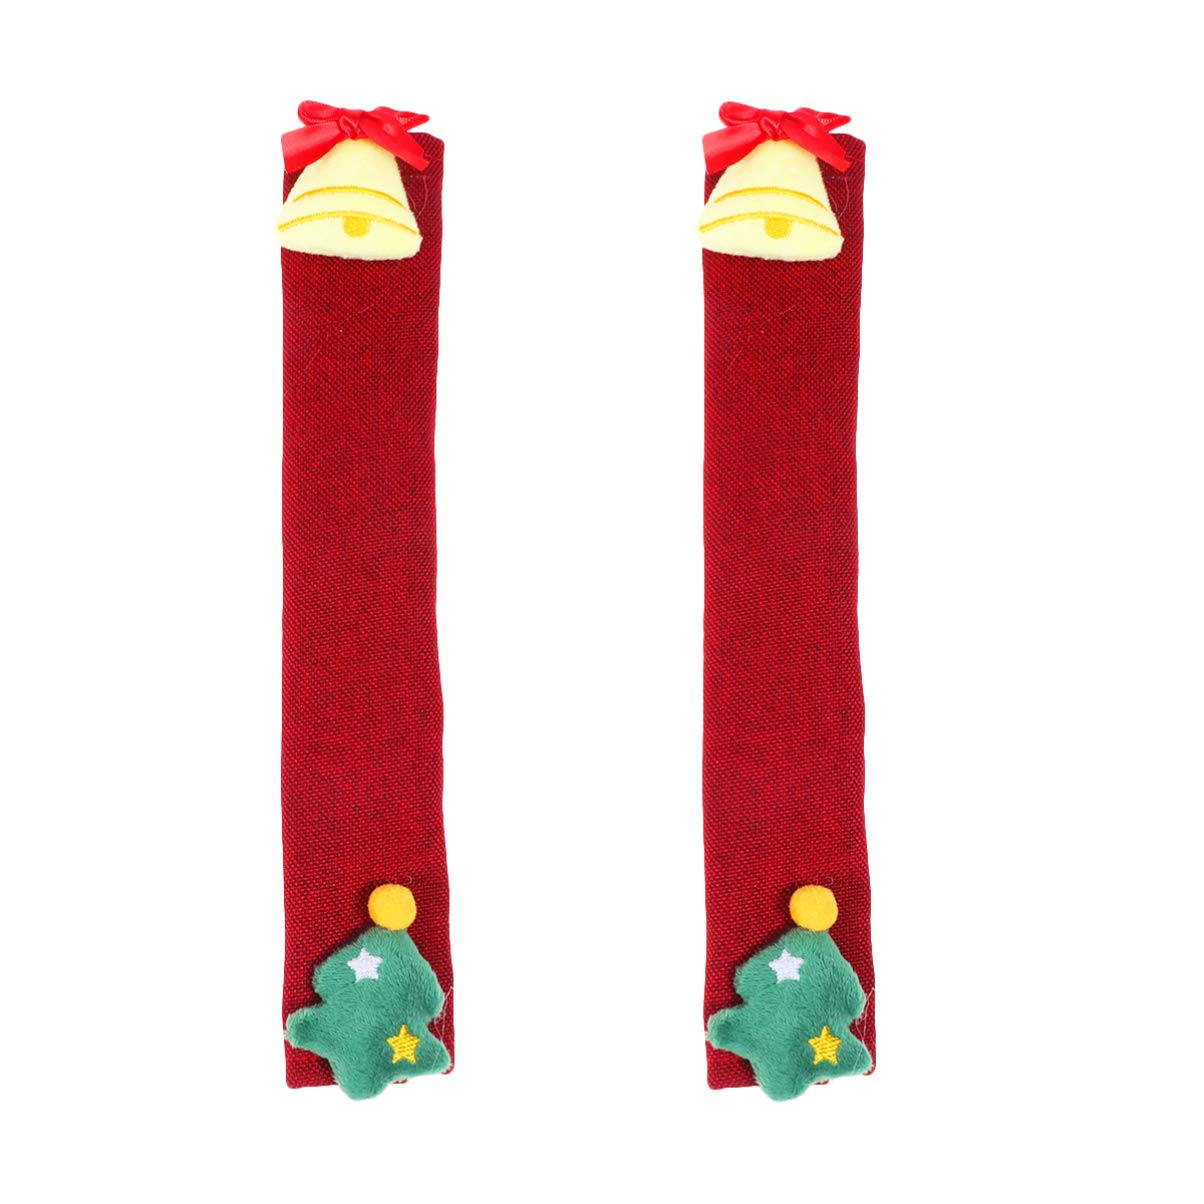 STOBOK 2Pcs Christmas Refrigerator Door Handle Covers Christmas Kitchen Appliance Handle Covers Decorations